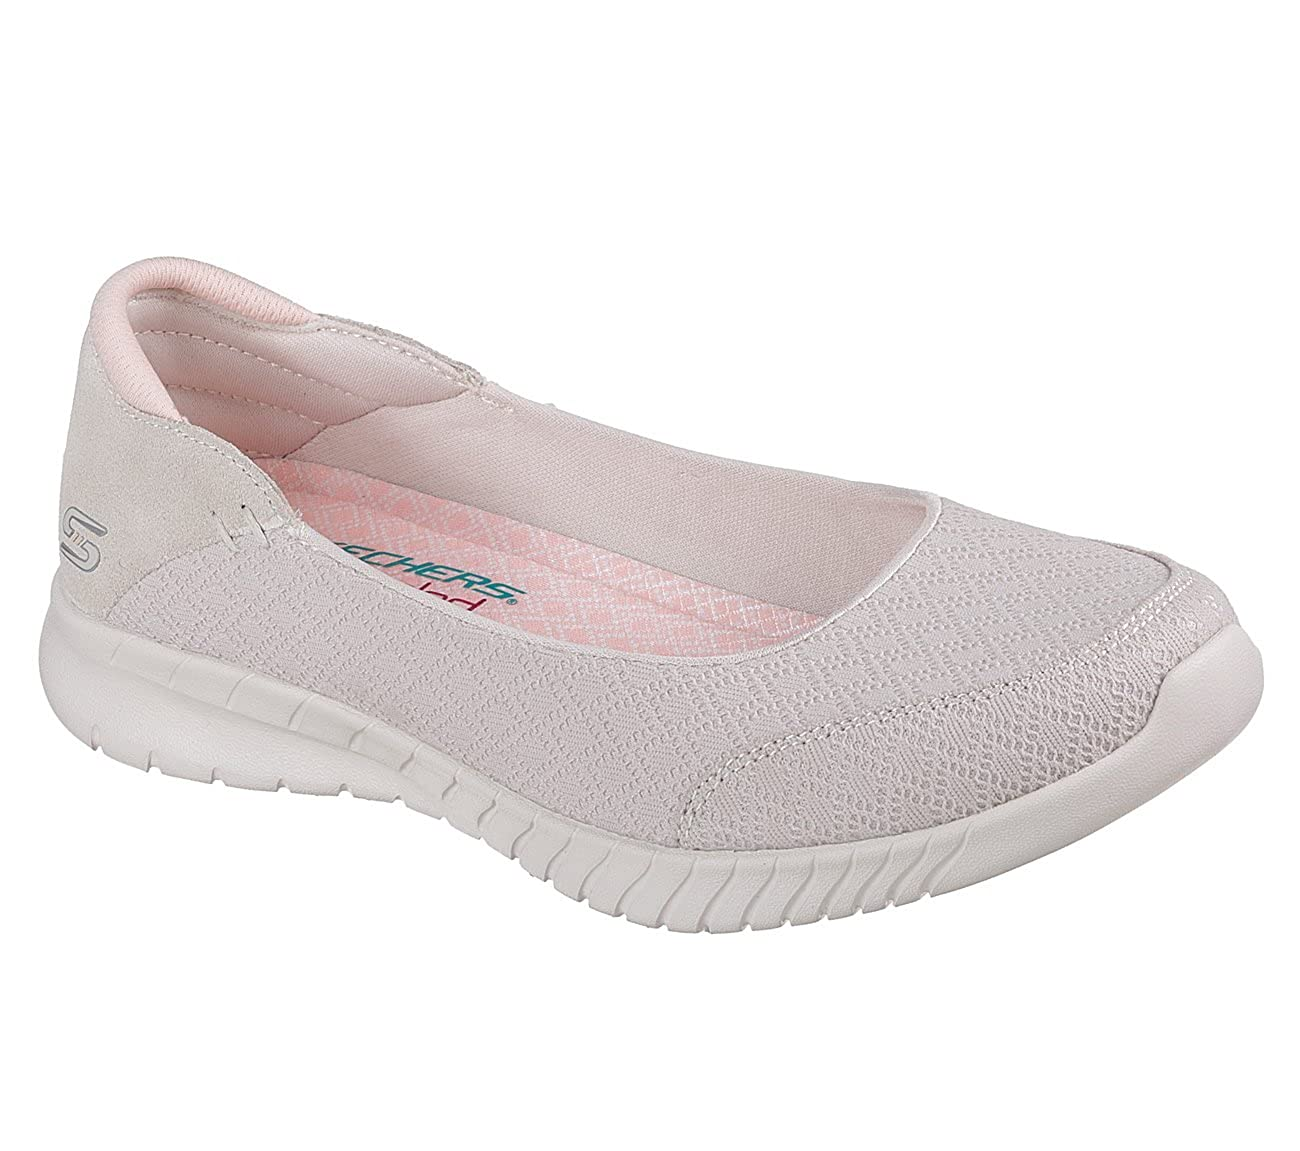 Gentiluomo Signora Skechers Wave-Lite-Don't Mention It, scarpe da ginnastica ginnastica ginnastica Donna Grande classificazione Cheapest Besteseller | marchio